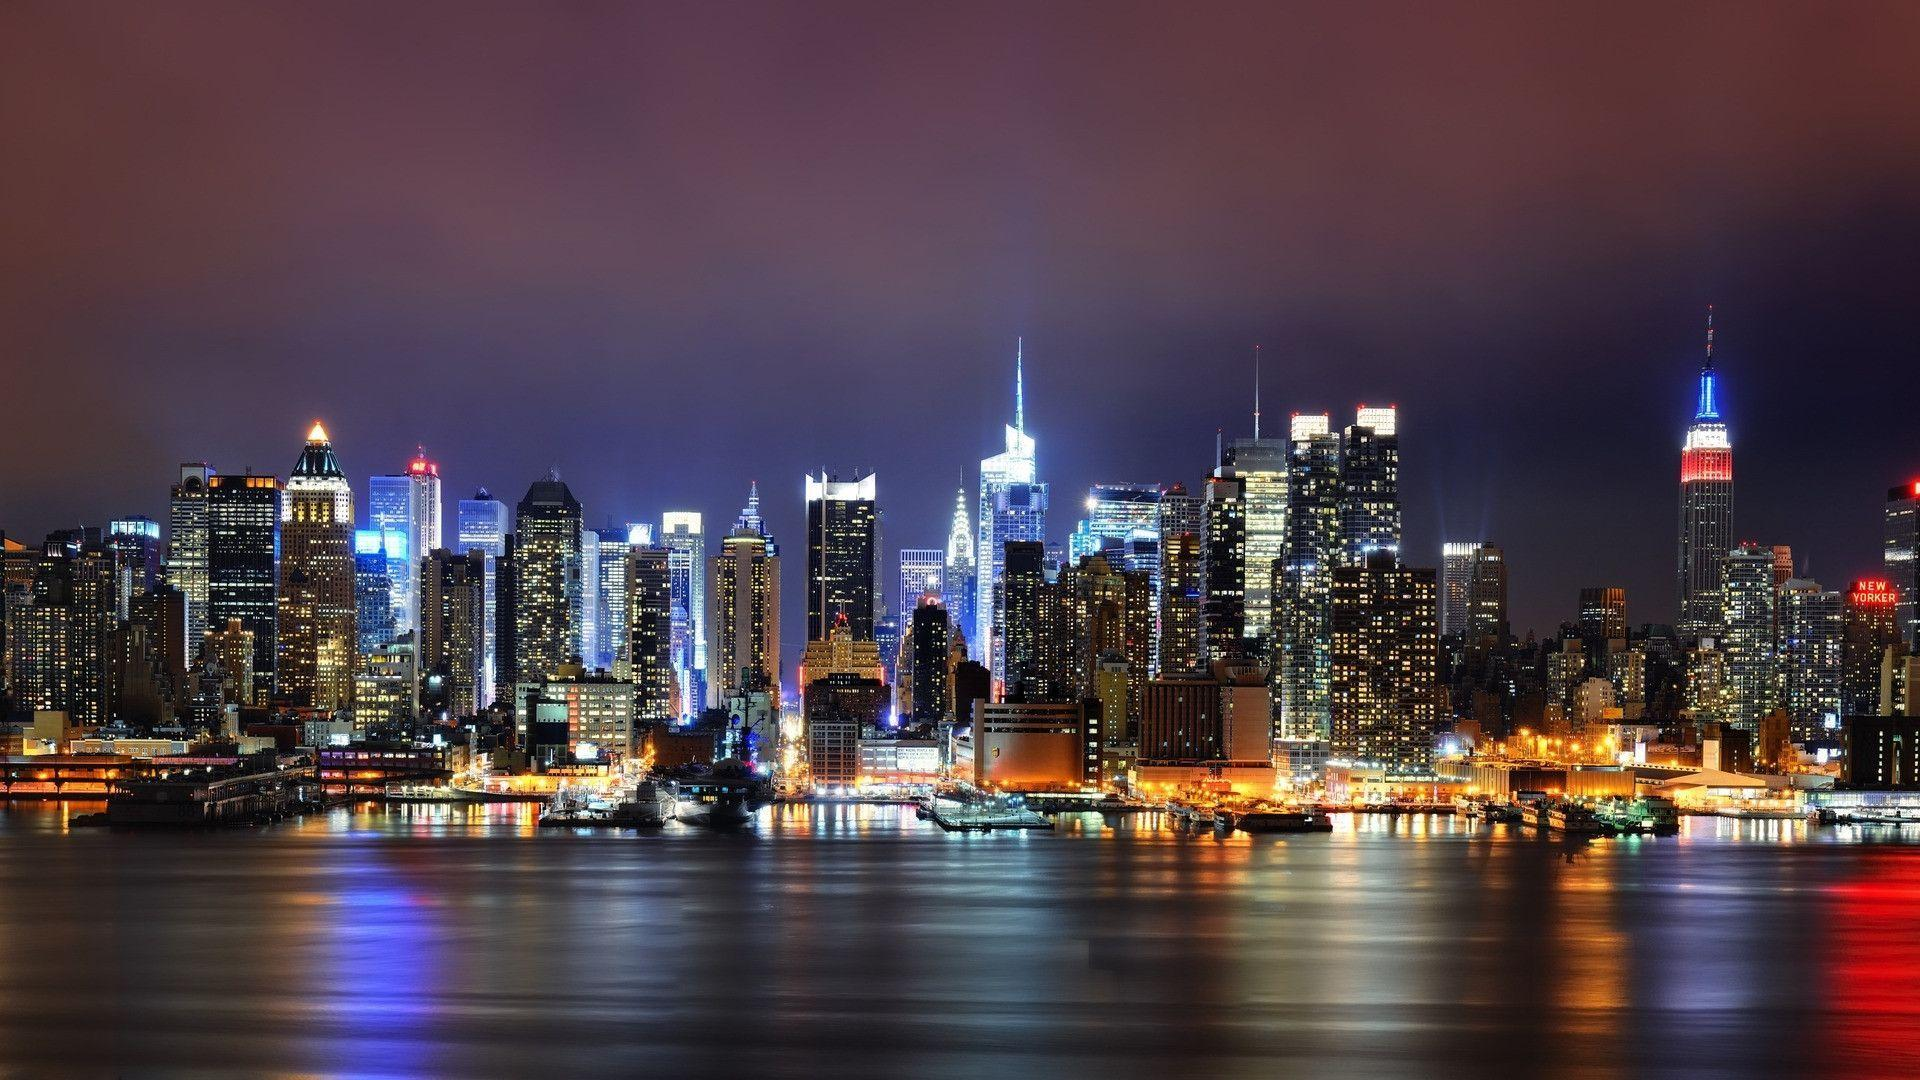 New York Wallpapers 3895 Desktop Backgrounds